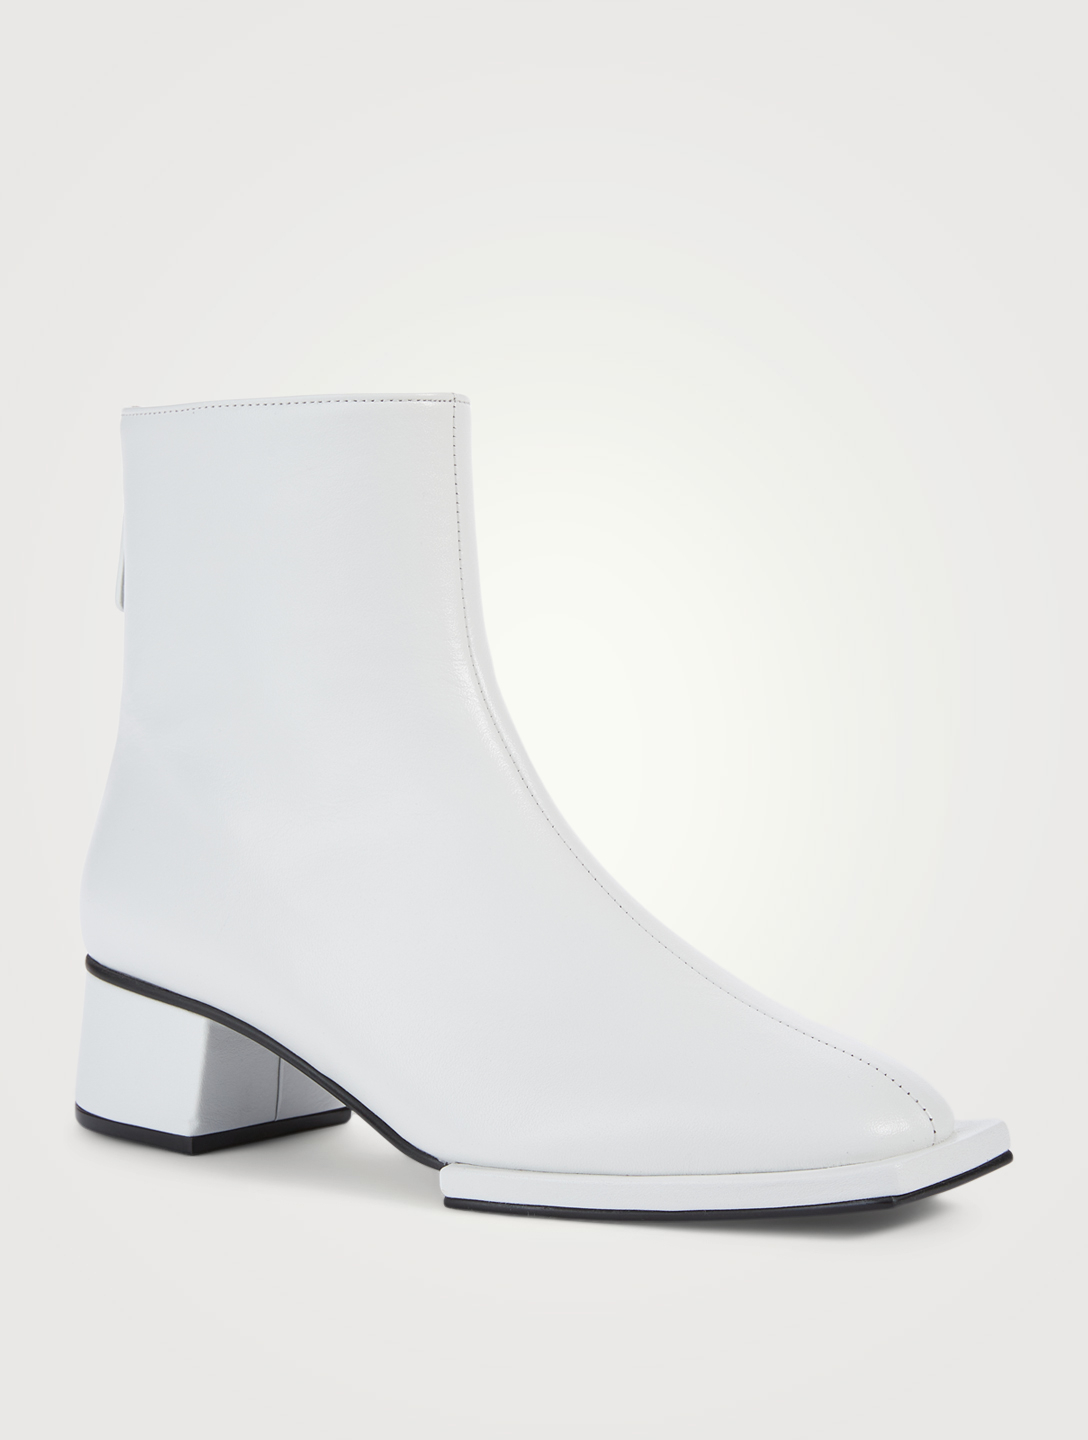 REIKE NEN Classic Zipper Leather Heeled Ankle Boots Women's White